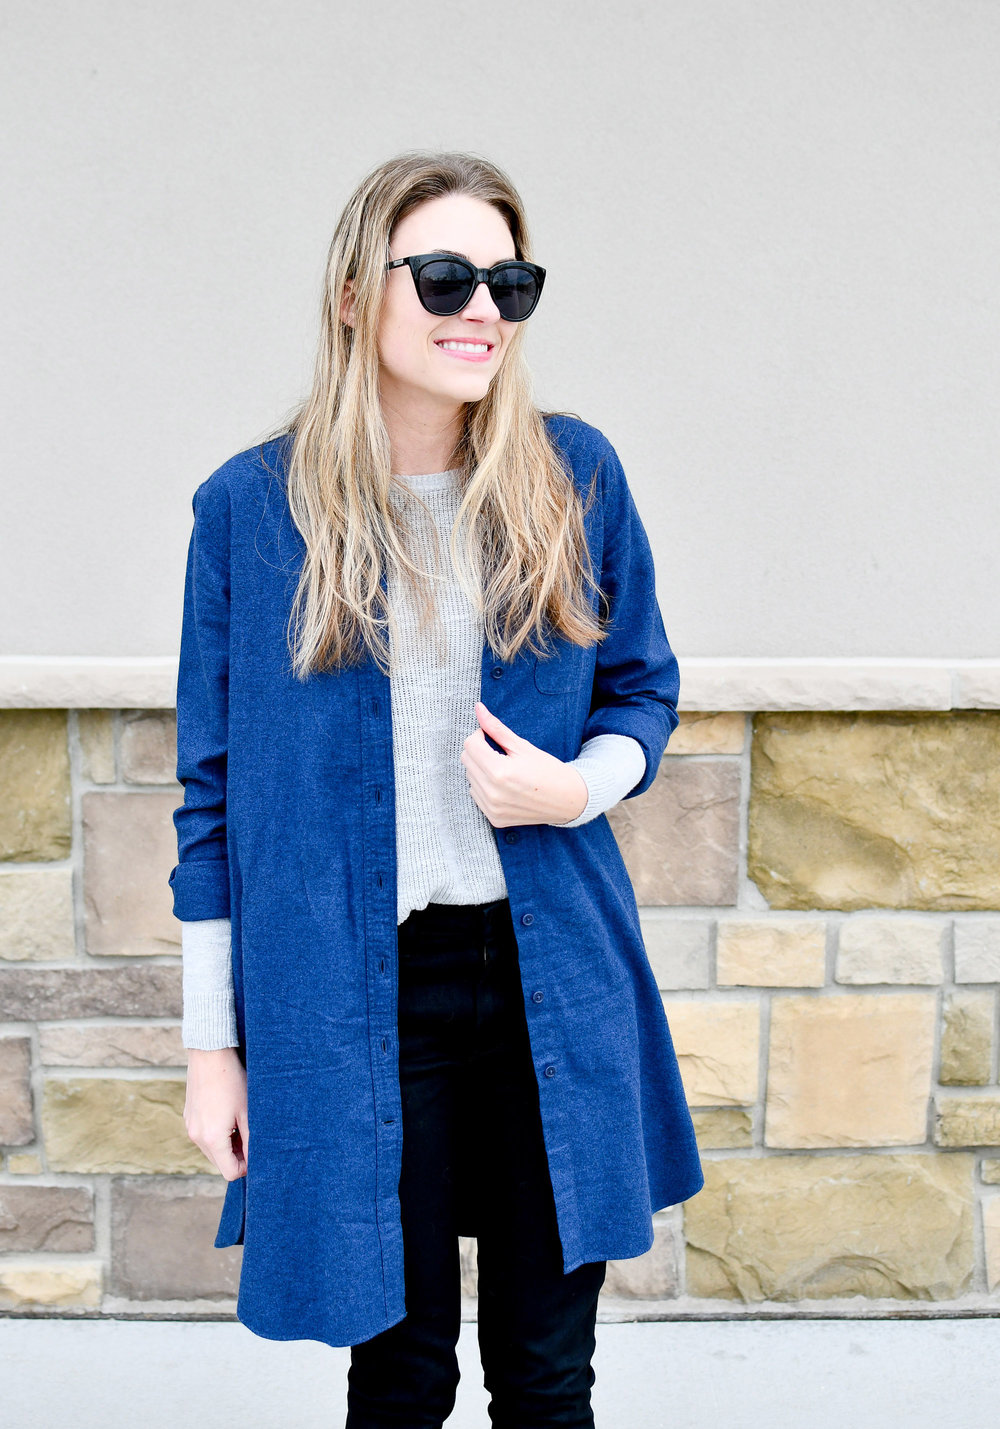 Flannel shirt dress fall outfit  — Cotton Cashmere Cat Hair